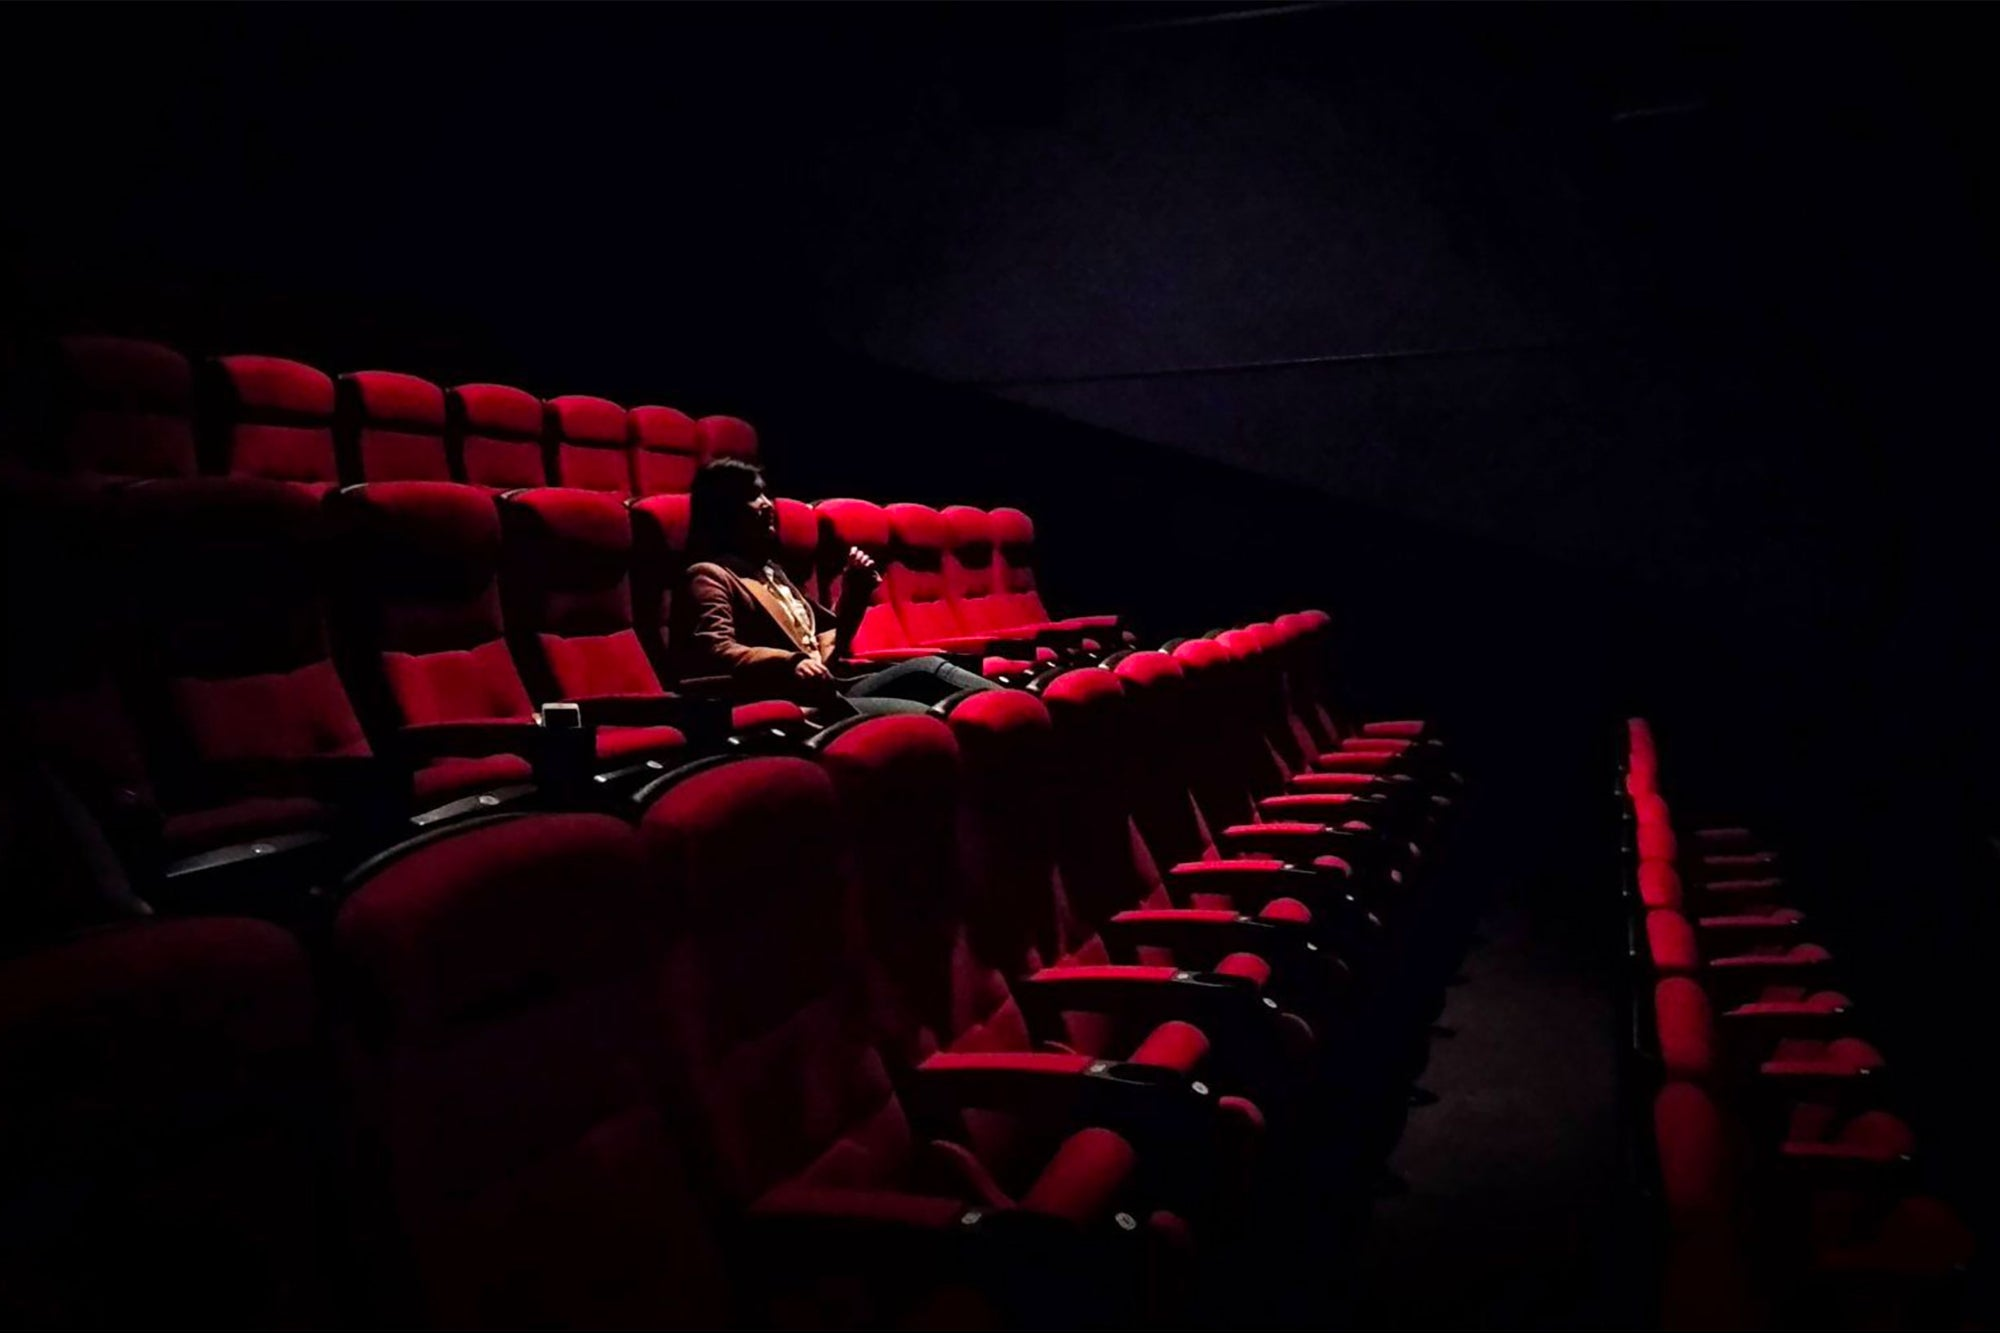 Amc Offers A Personal Movie Theater Experience For 99